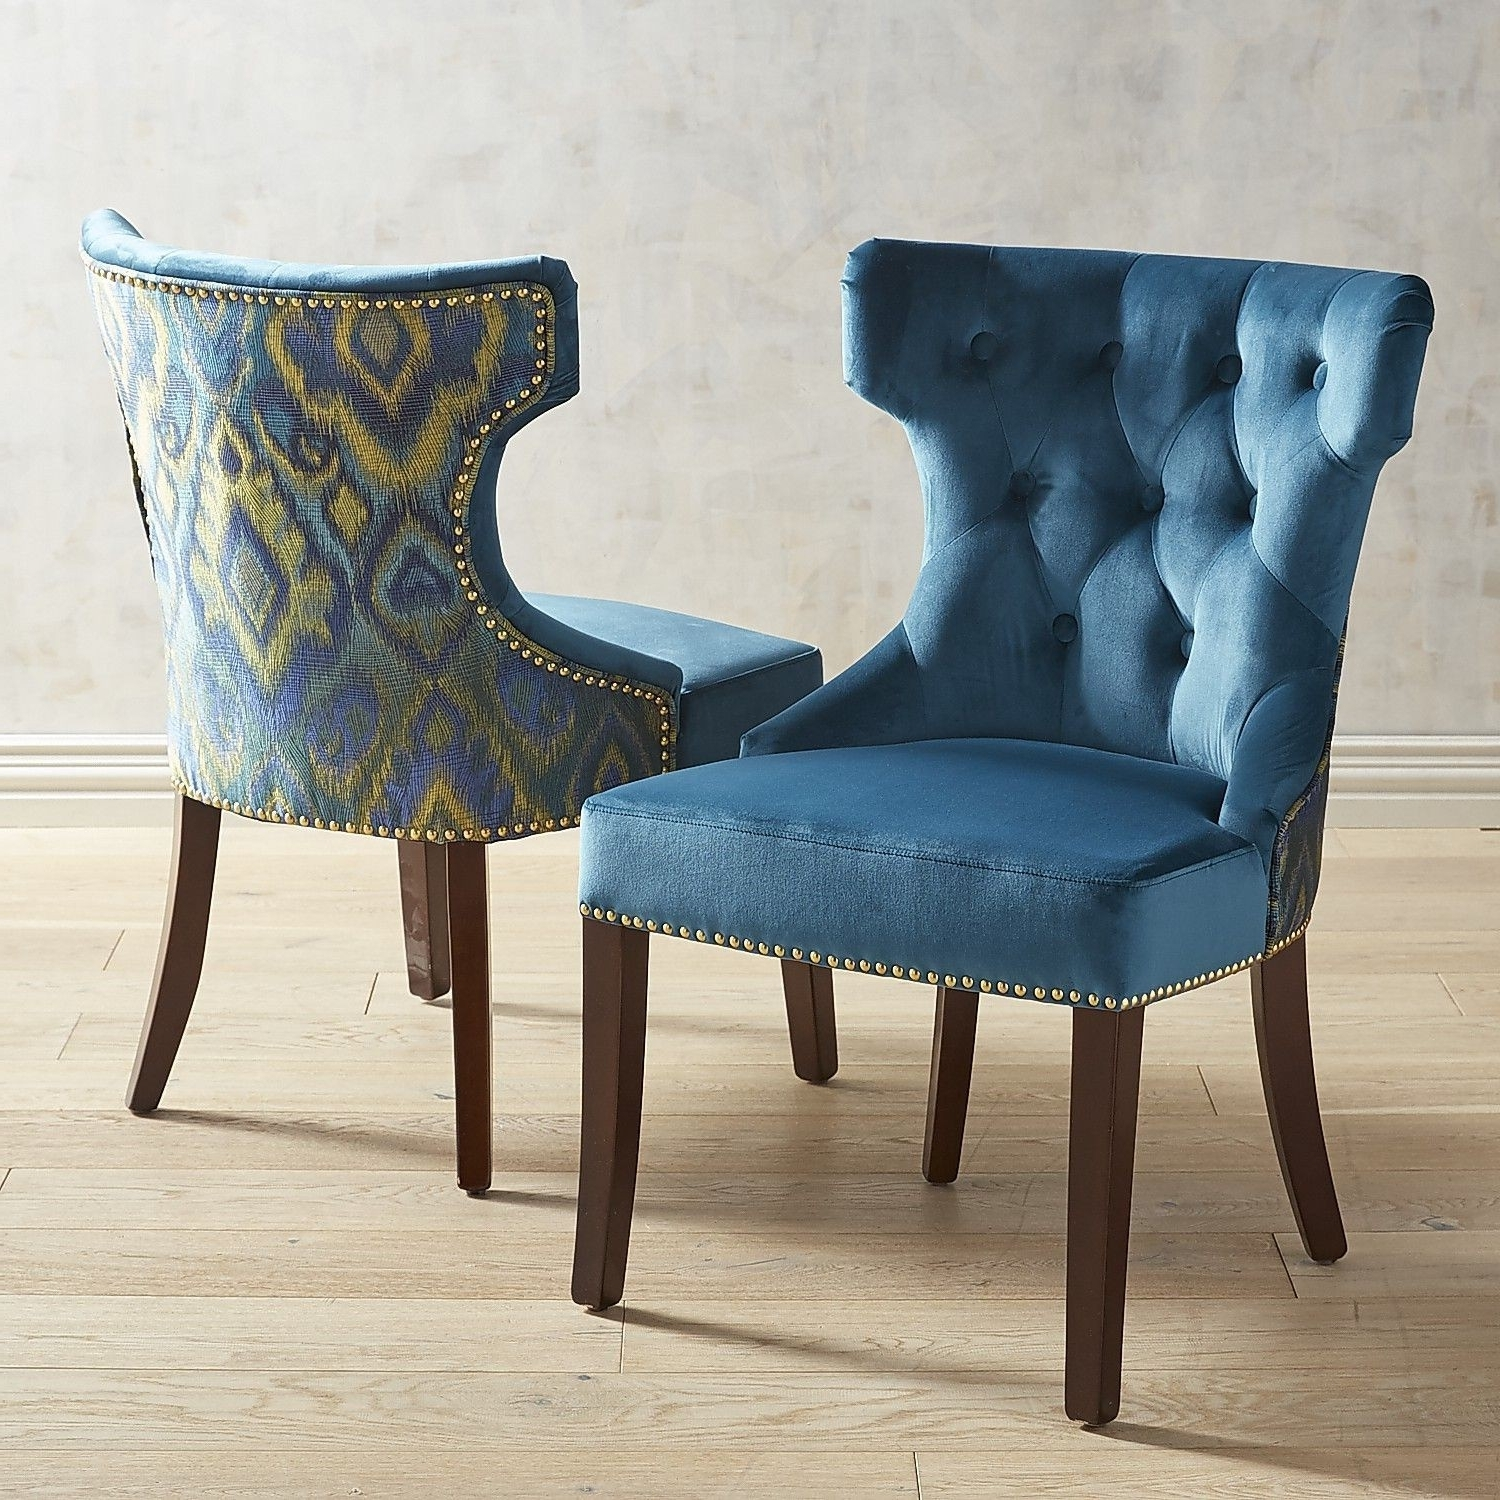 Preferred Ebay Dining Chairs Throughout Laura Ashley Armchair Ebay Inspirational Hourglass Plume Teal Dining (Gallery 7 of 25)